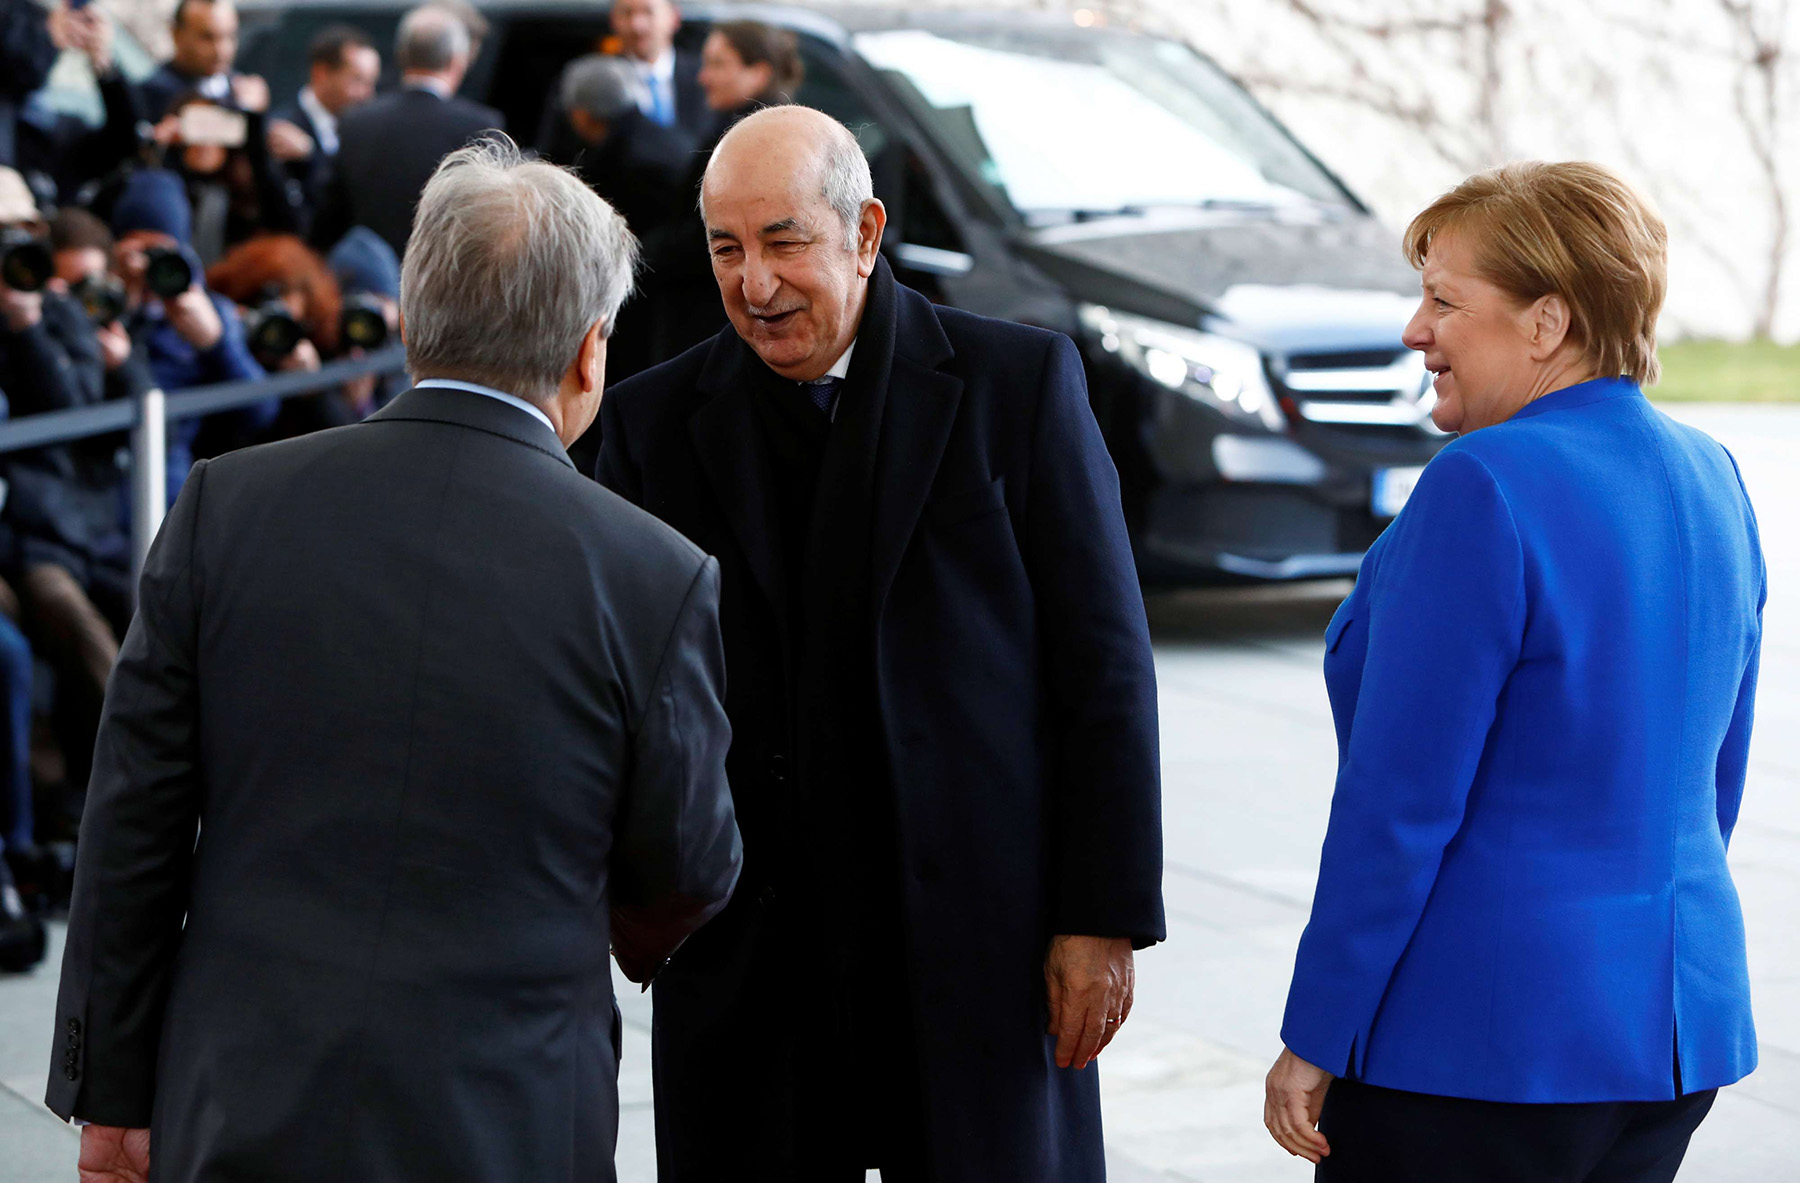 German Chancellor Angela Merkel and United Nations Secretary-General Antonio Guterres welcome Algerian President Abdelmadjid Tebboune at the Libya summit in Berlin, Germany, January 19, 2020. (REUTERS)